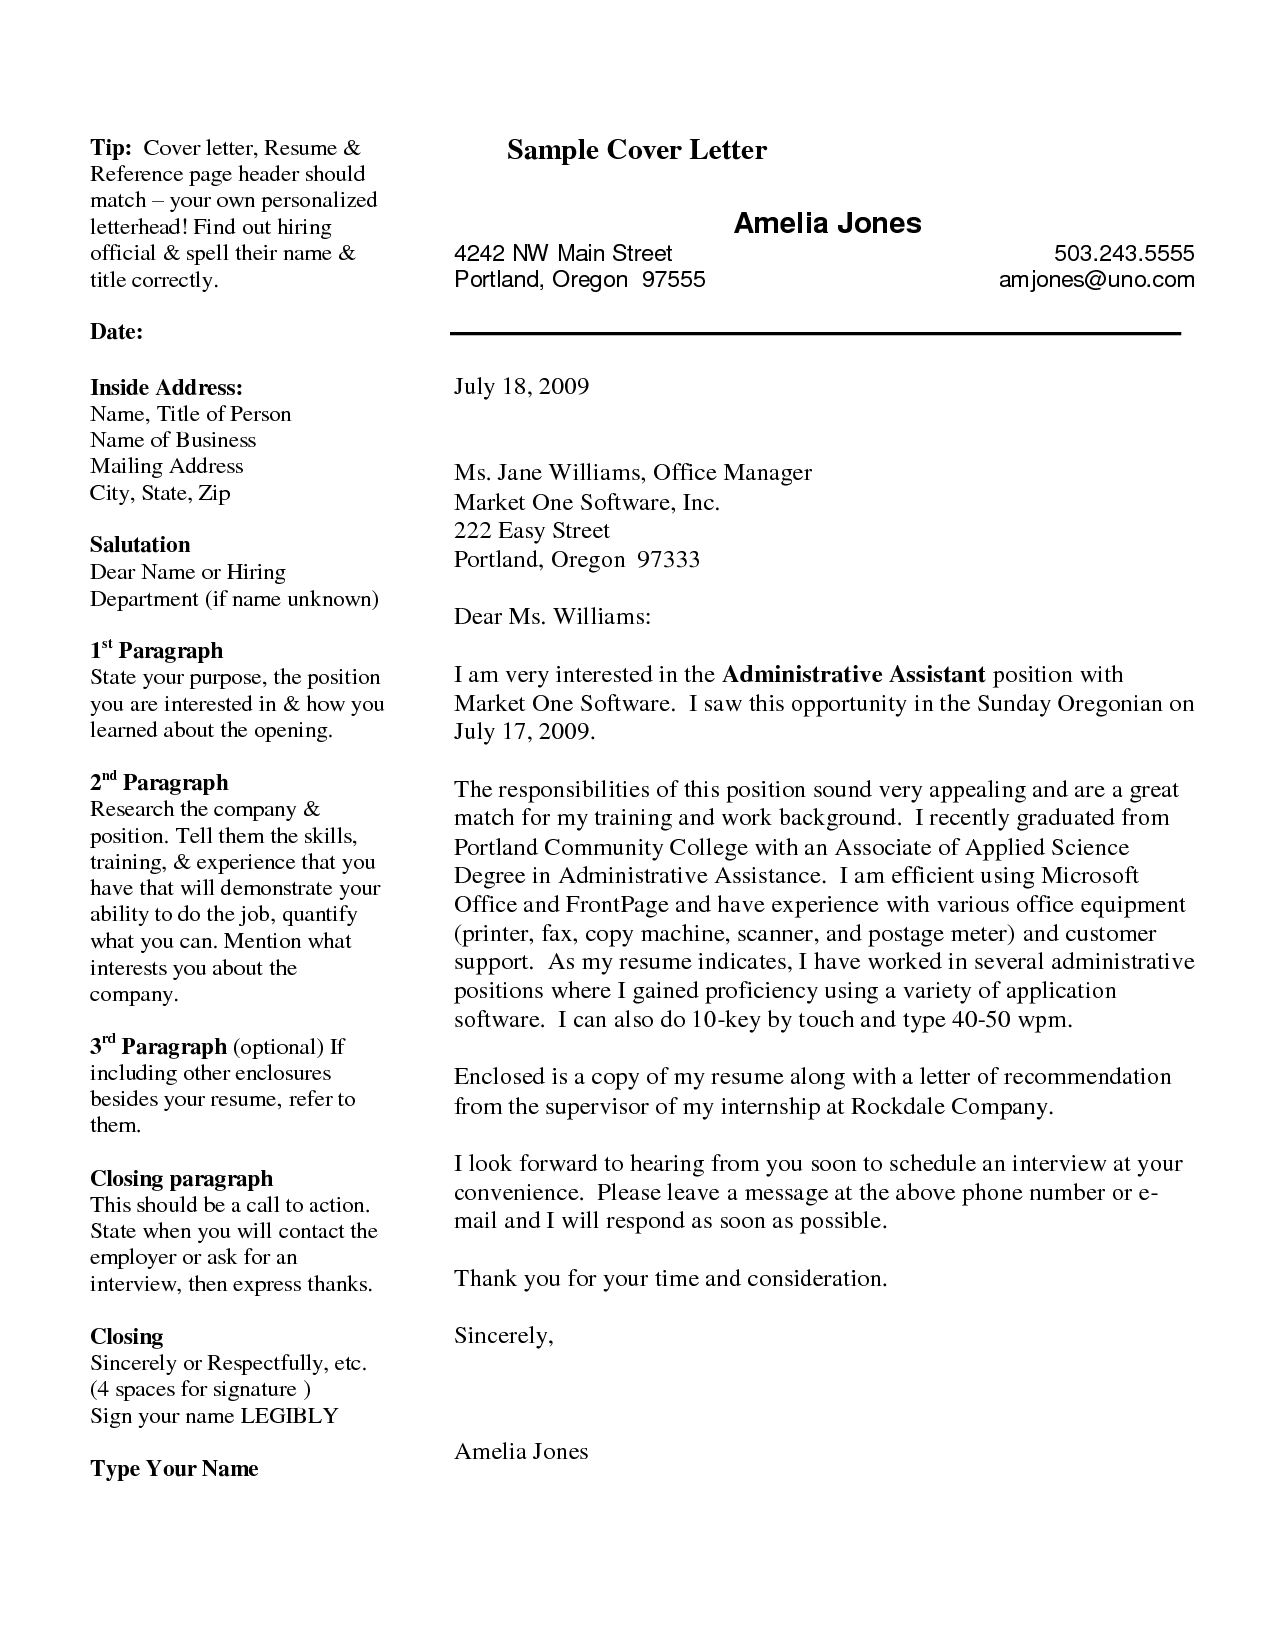 professional resume cover letter samplesprofessional resume cover letter samples professional resume cover letter sampleshow - Professional Resume And Cover Letter